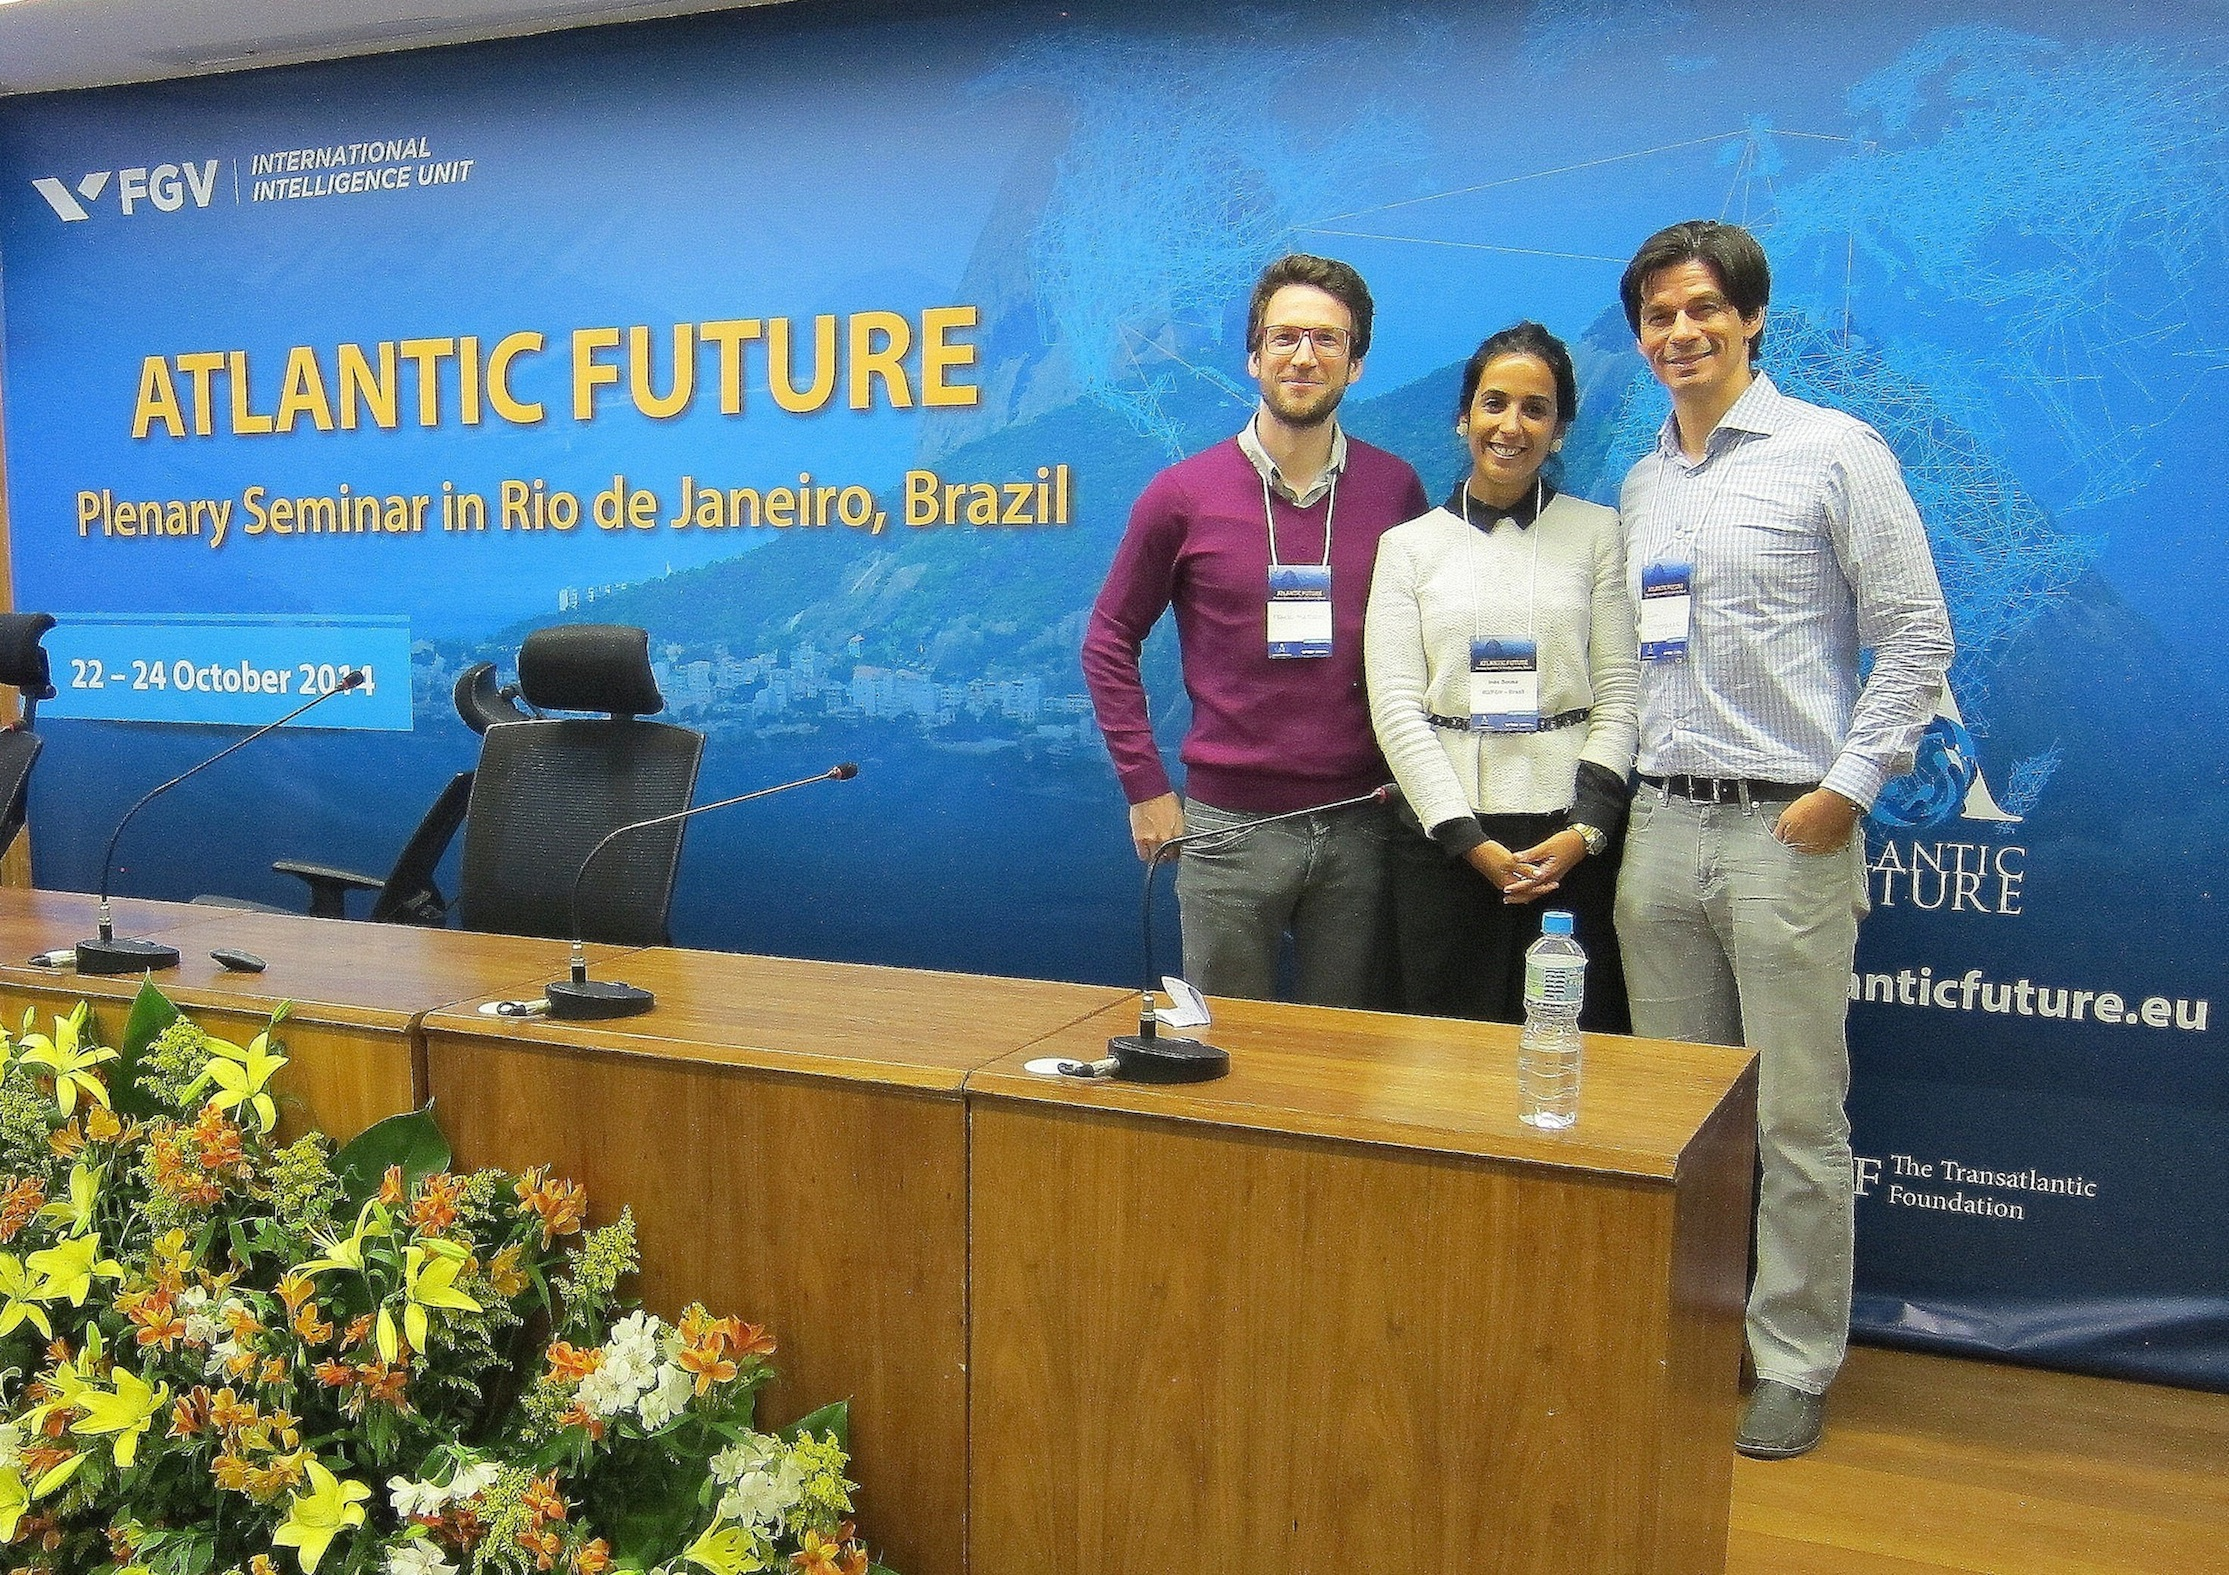 (FGV), in Rio de Janeiro (22-24 October) with meeting organiser Inês Sousa from the International Intelligence Unit of FGV.